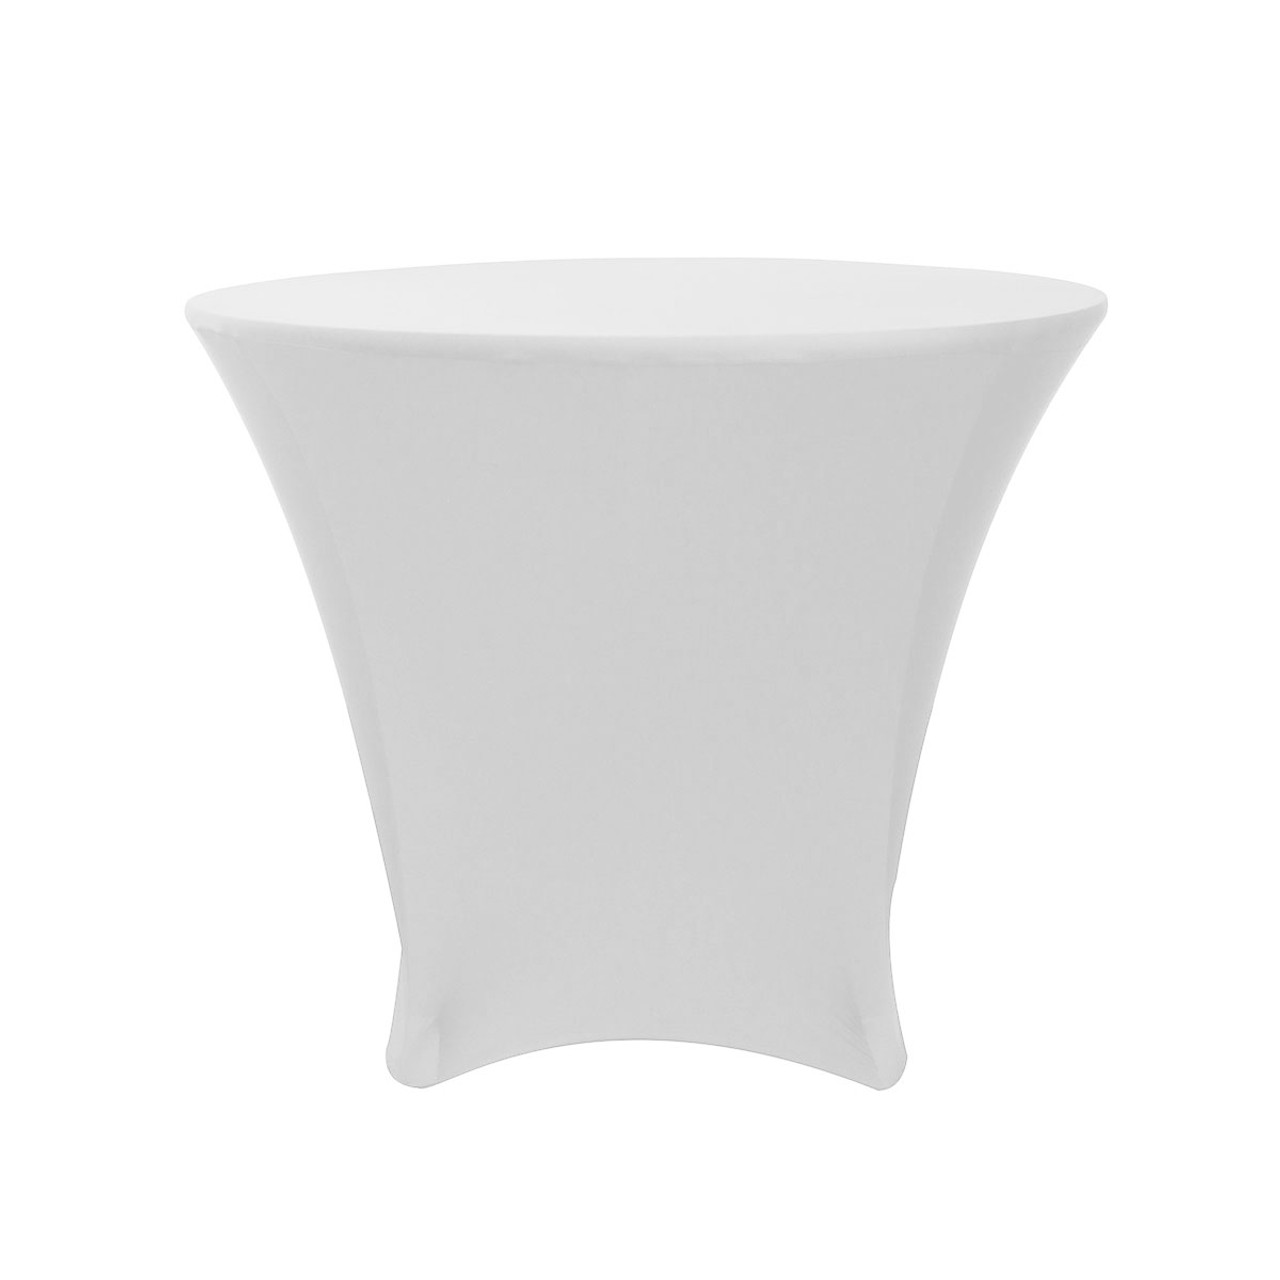 36 x 30 inch Lowboy Cocktail Round Stretch Spandex Table Covers White ...  sc 1 st  Your Chair Covers & 36 x 30 Inch Lowboy Cocktail Round Stretch Spandex Table Cover White ...